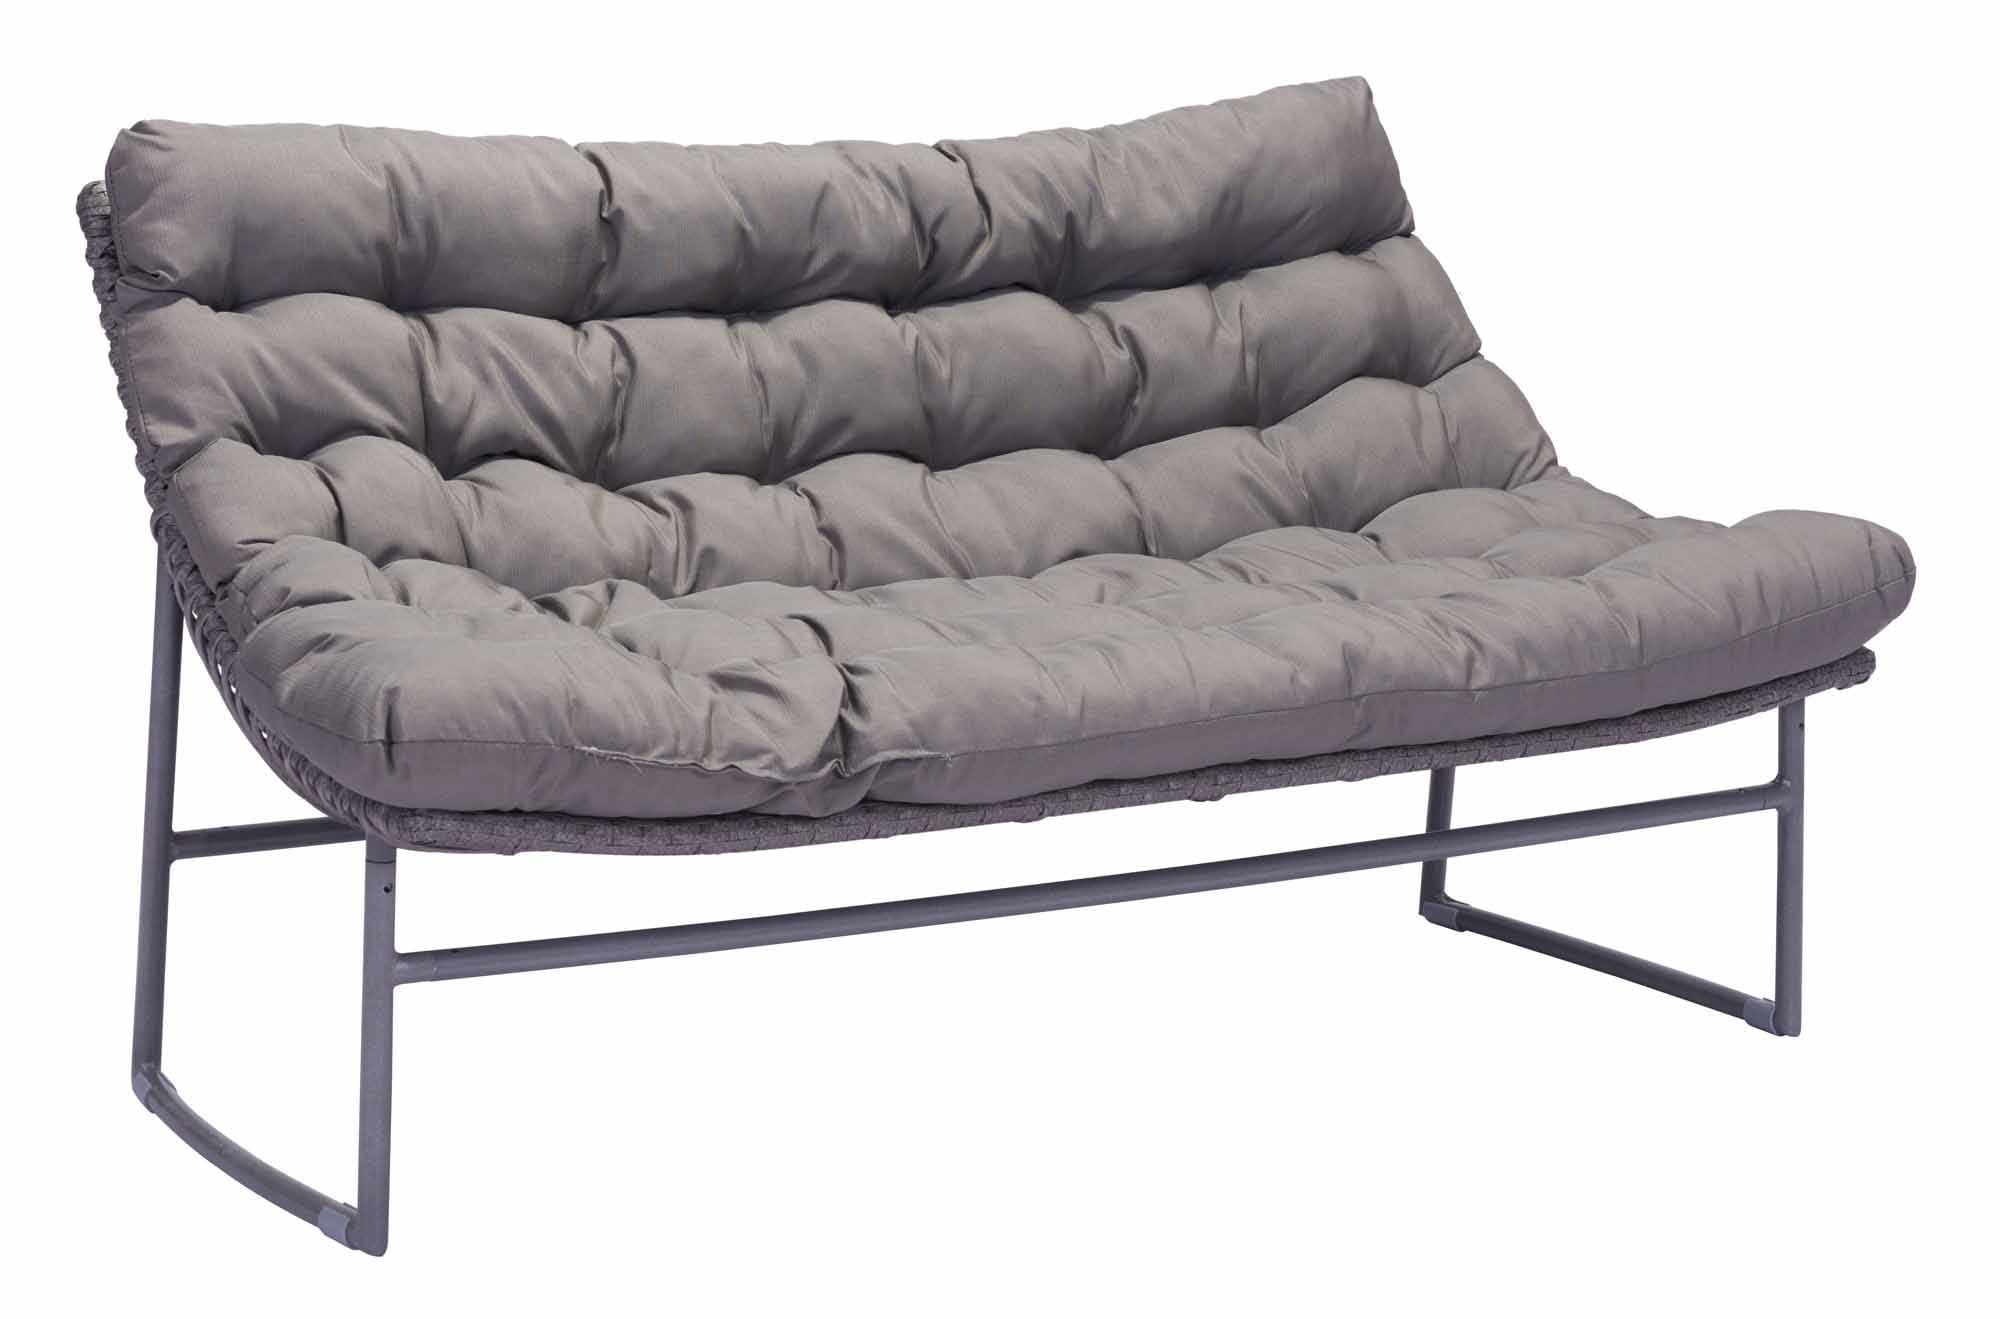 Sensational Zuo Modern Snappy Convertible Sofa Bed Images Of Home Design Ibusinesslaw Wood Chair Design Ideas Ibusinesslaworg